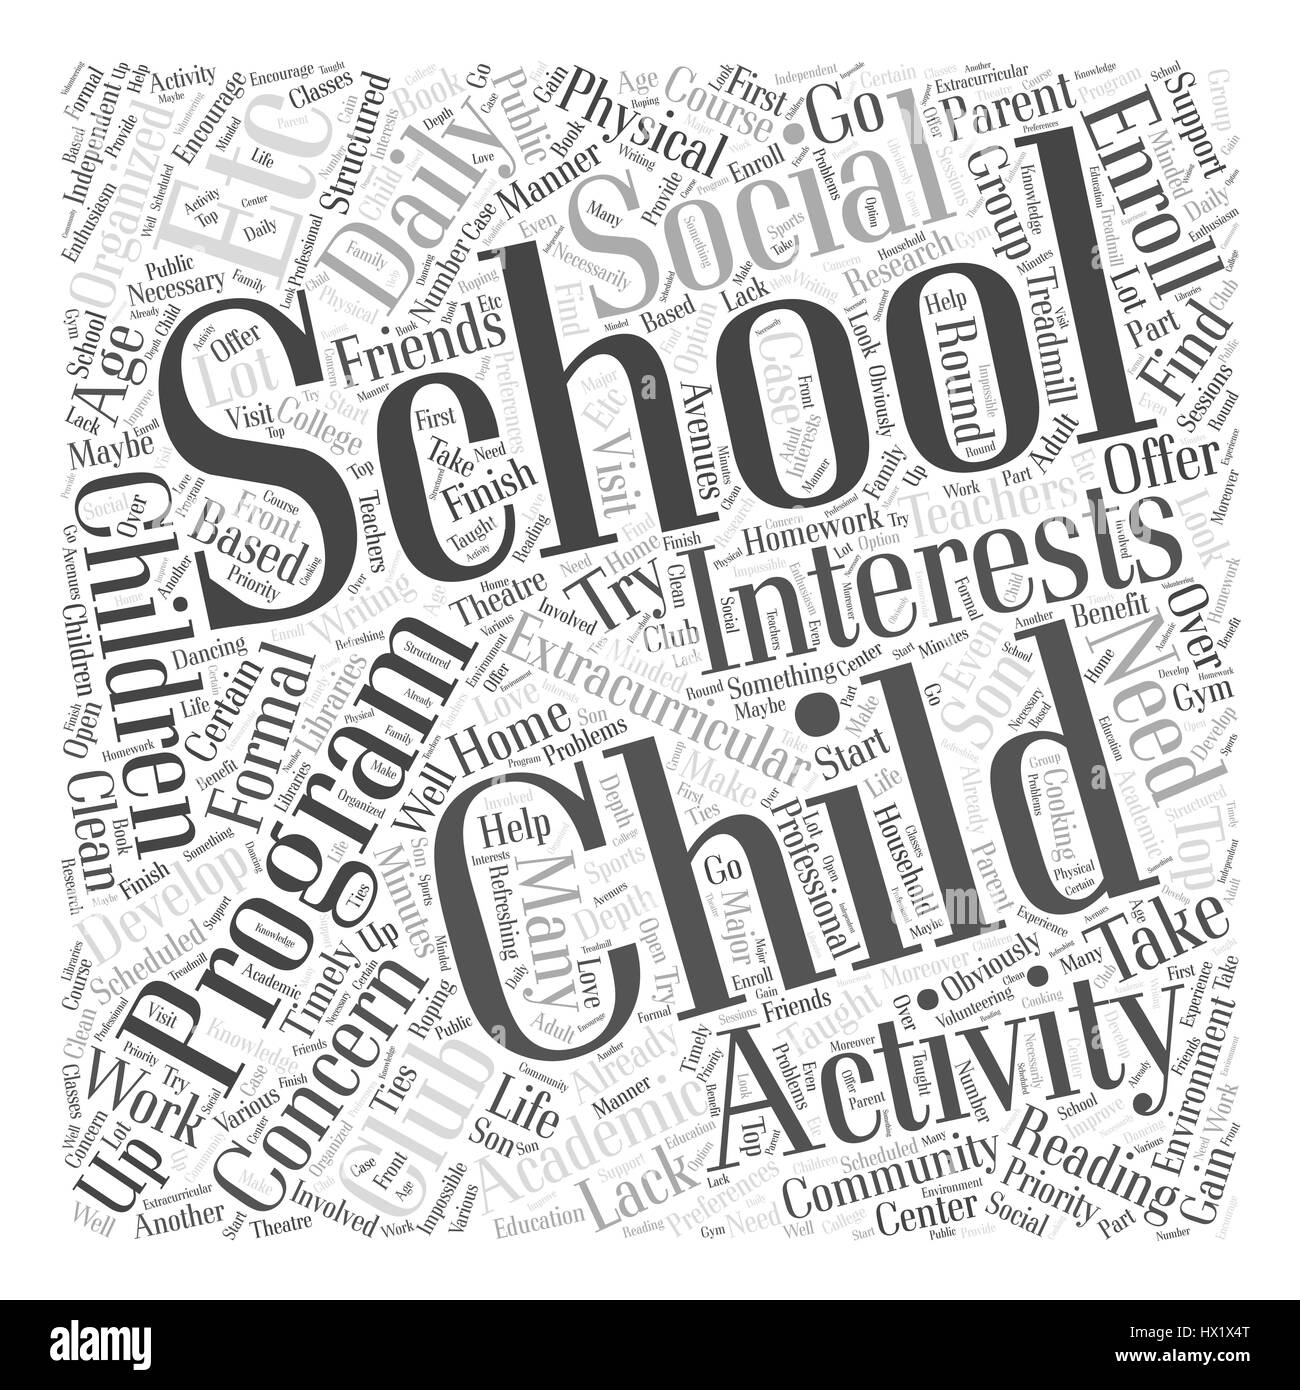 a home based after school program Word Cloud Concept Stock Vector ...